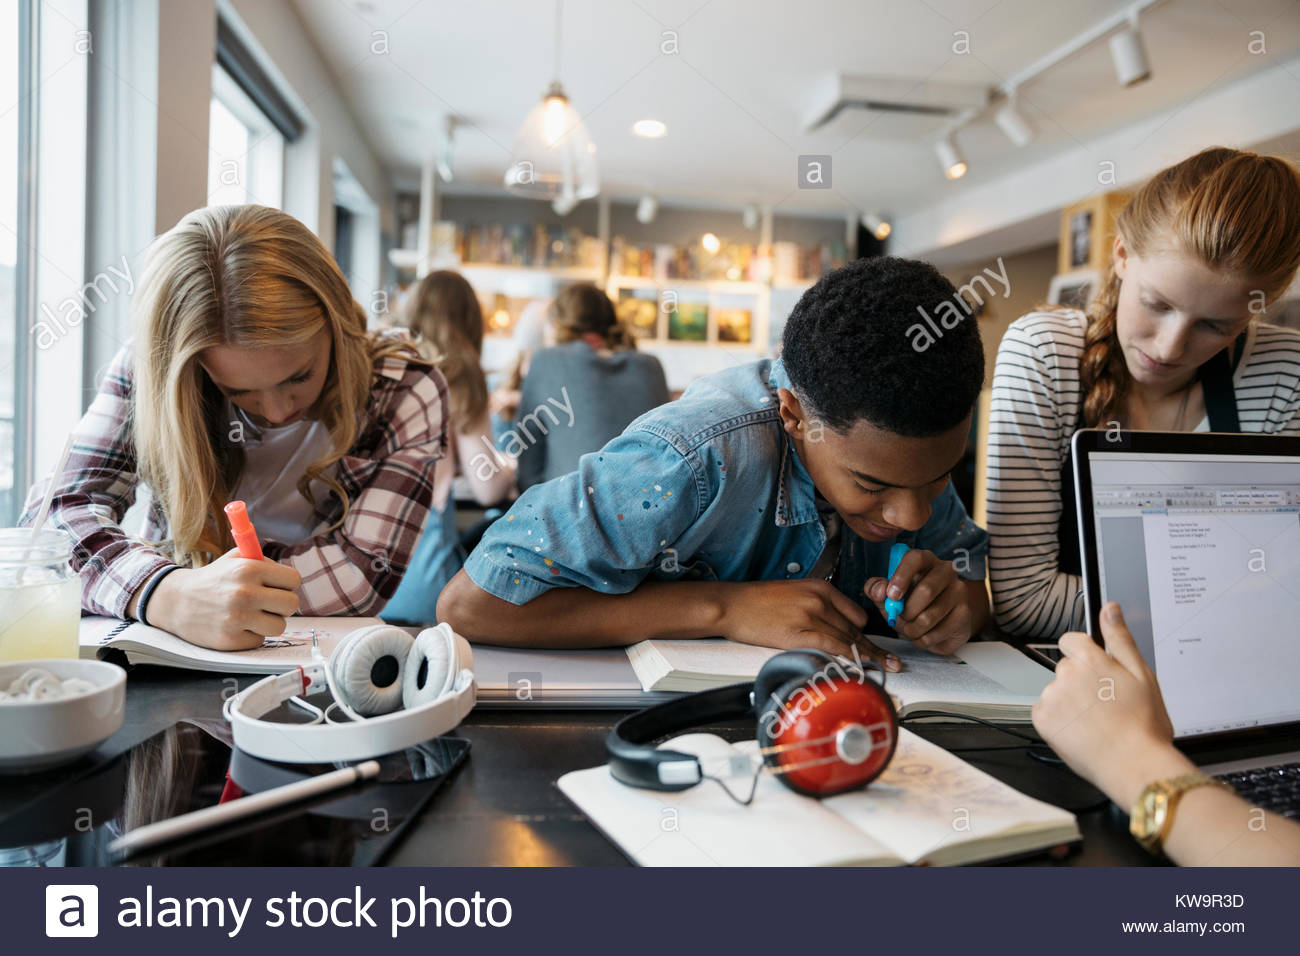 High School Studenten studieren an Cafe Tabelle Stockfoto